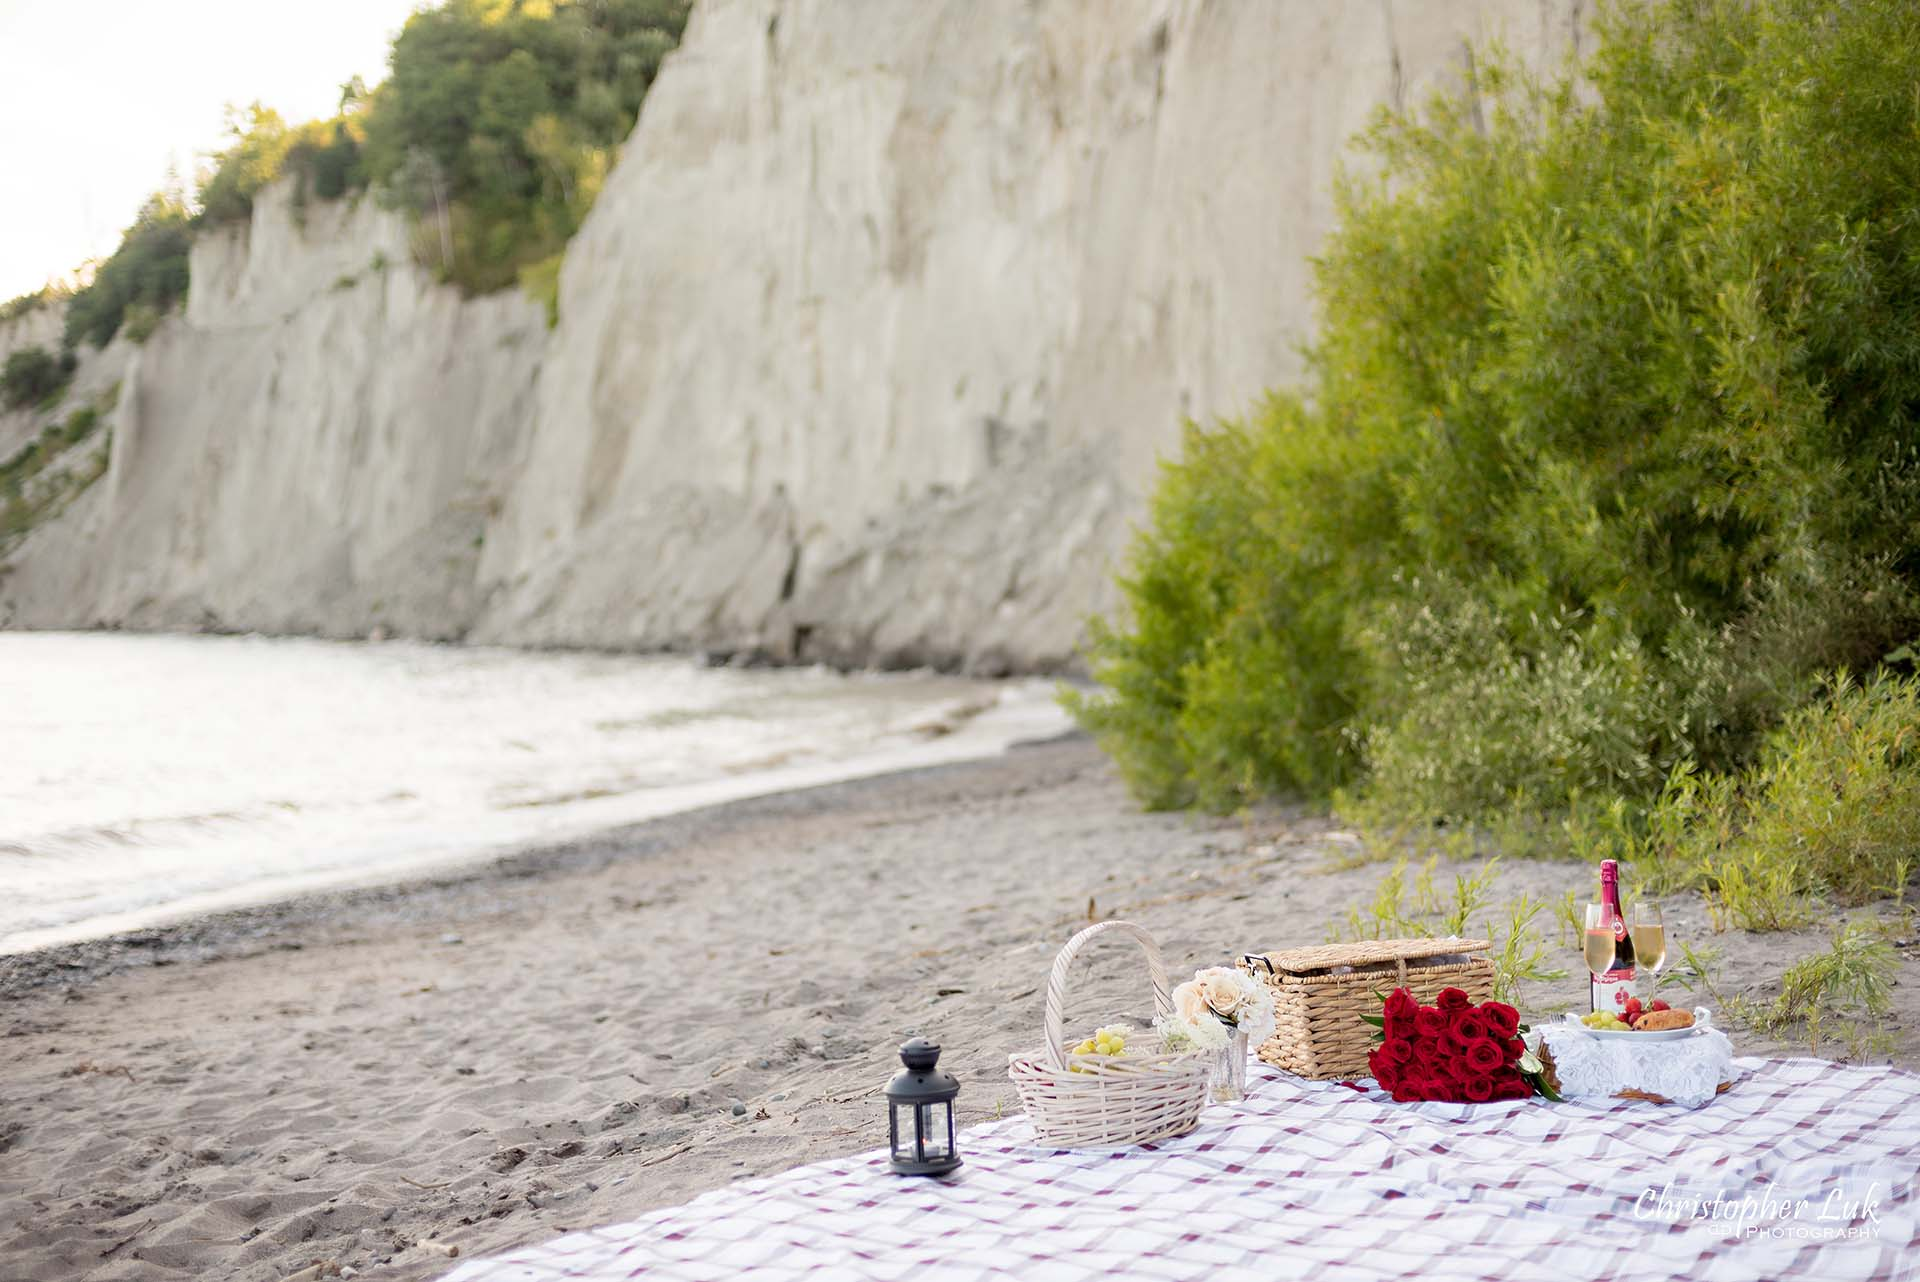 Christopher Luk Toronto Photographer Scarborough Bluffs Beach Park Sunset Surprise Wedding Marriage Engagement Proposal Picnic Blanket Basket